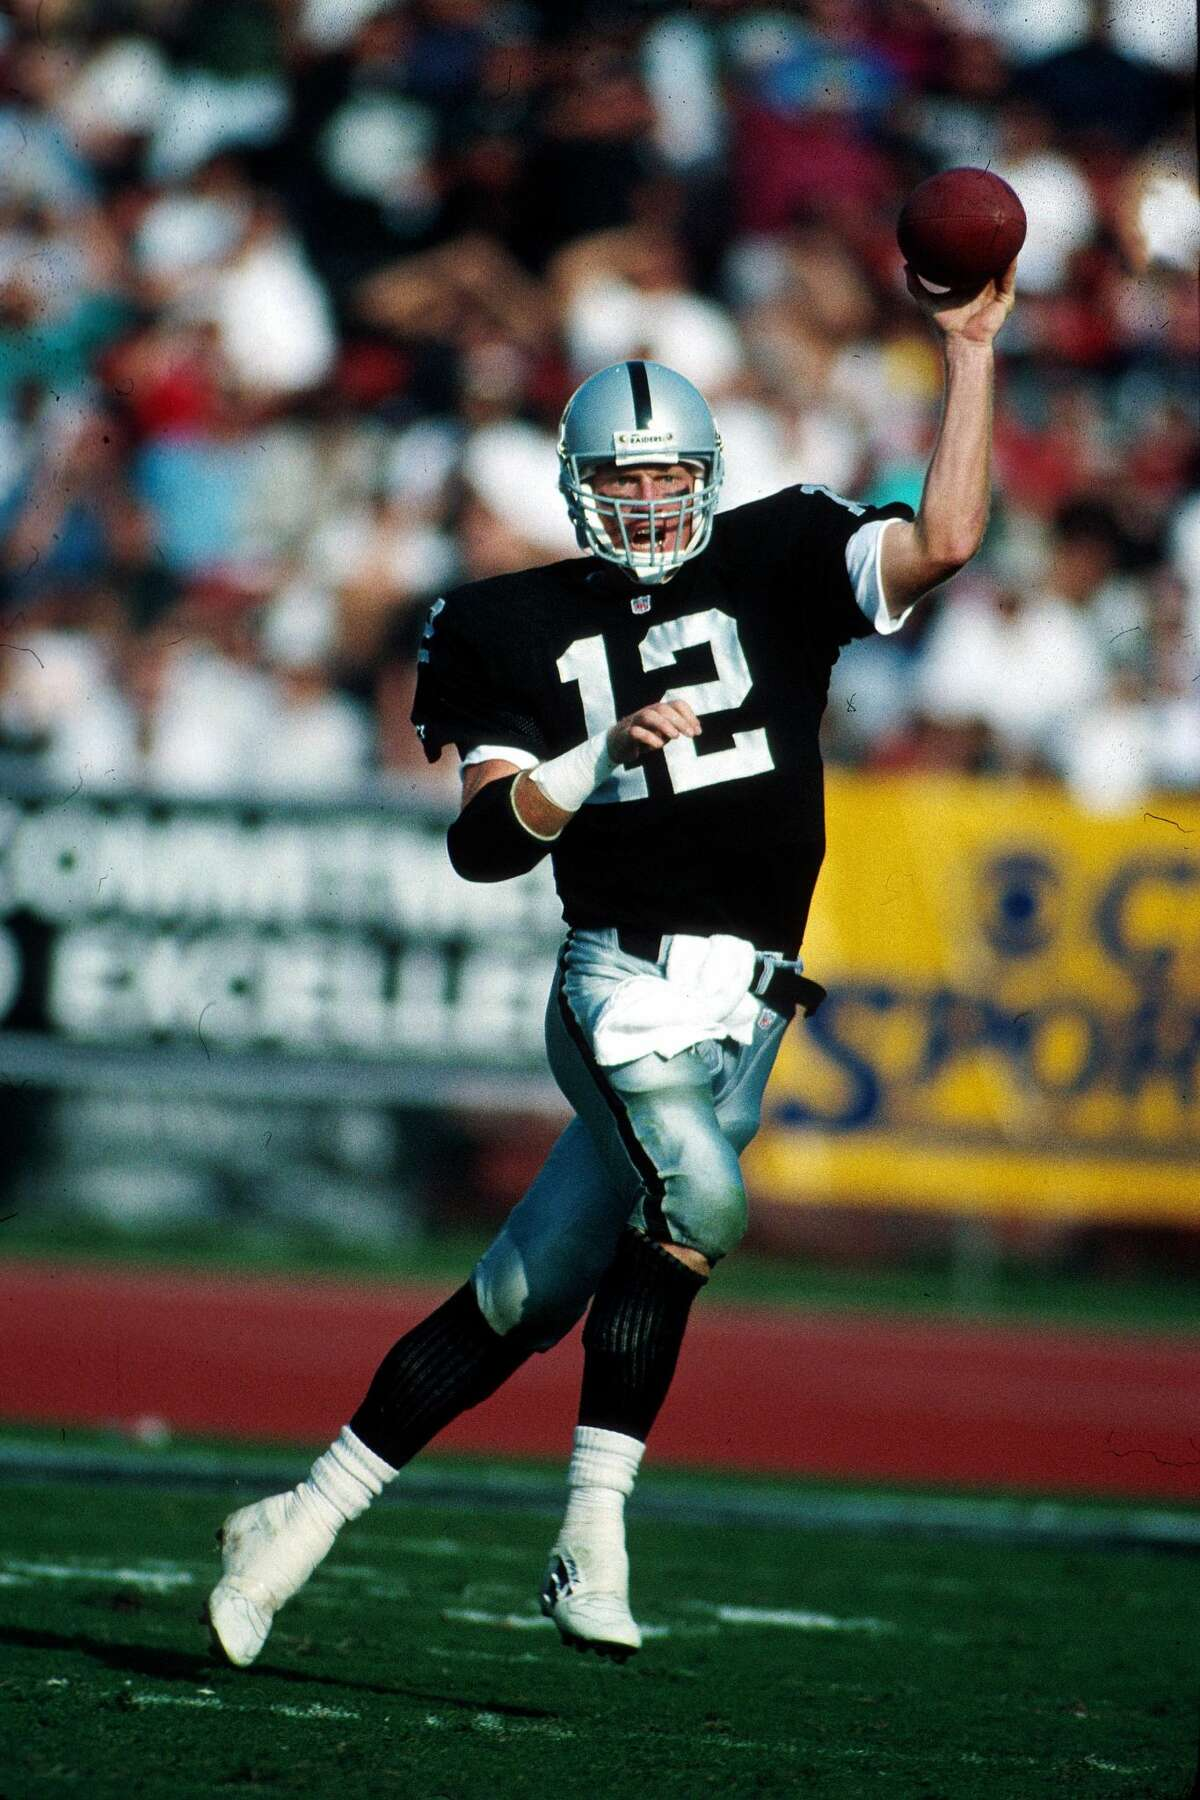 Todd Marinovich, quarterback - 1991 NFL Draft, first round, 24th overall Billed as the first athlete bred from birth to play quarterback, Marinovich's famously micromanaging father made him a star before he'd even committed to college. Drugs, alcohol abuse and horrible on-the-field play turned Marinovich into one of the Raiders' - and the NFL's - biggest draft busts.